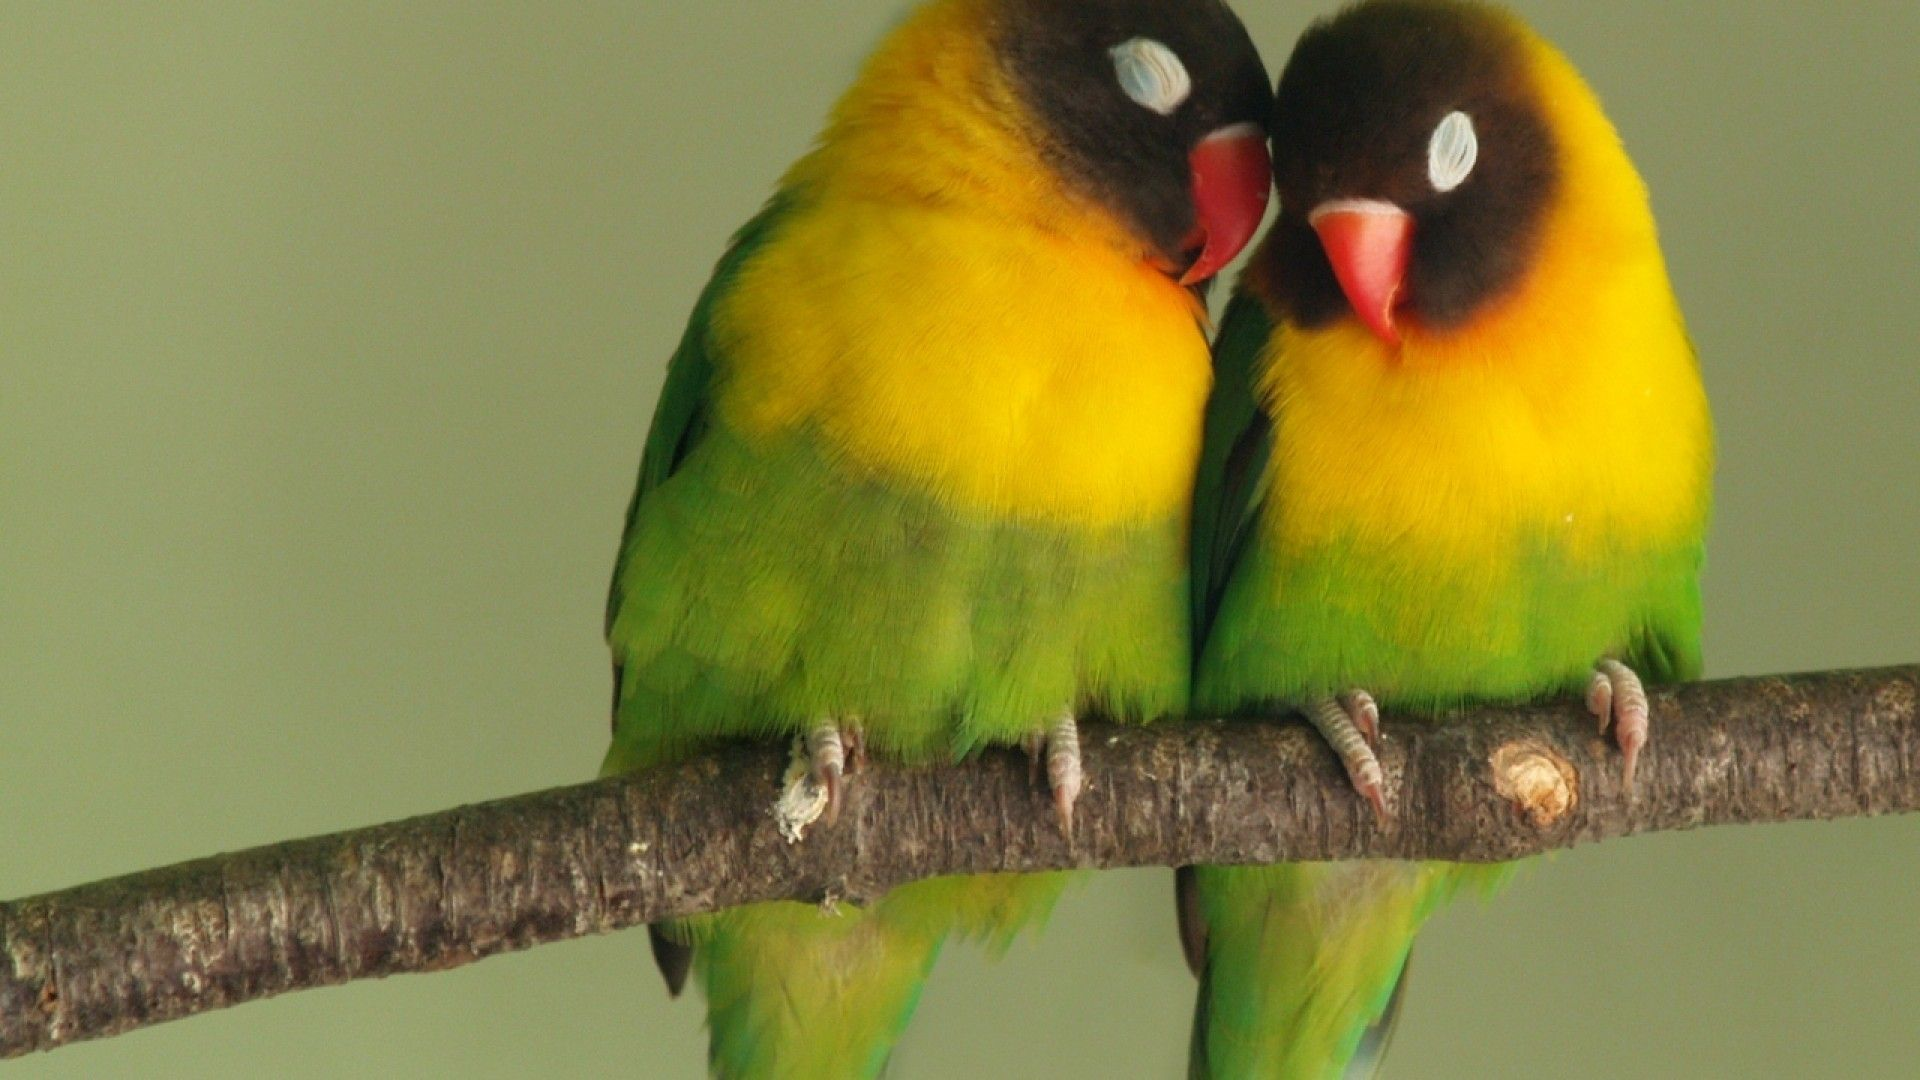 African Love Wallpapers Top Free African Love Backgrounds